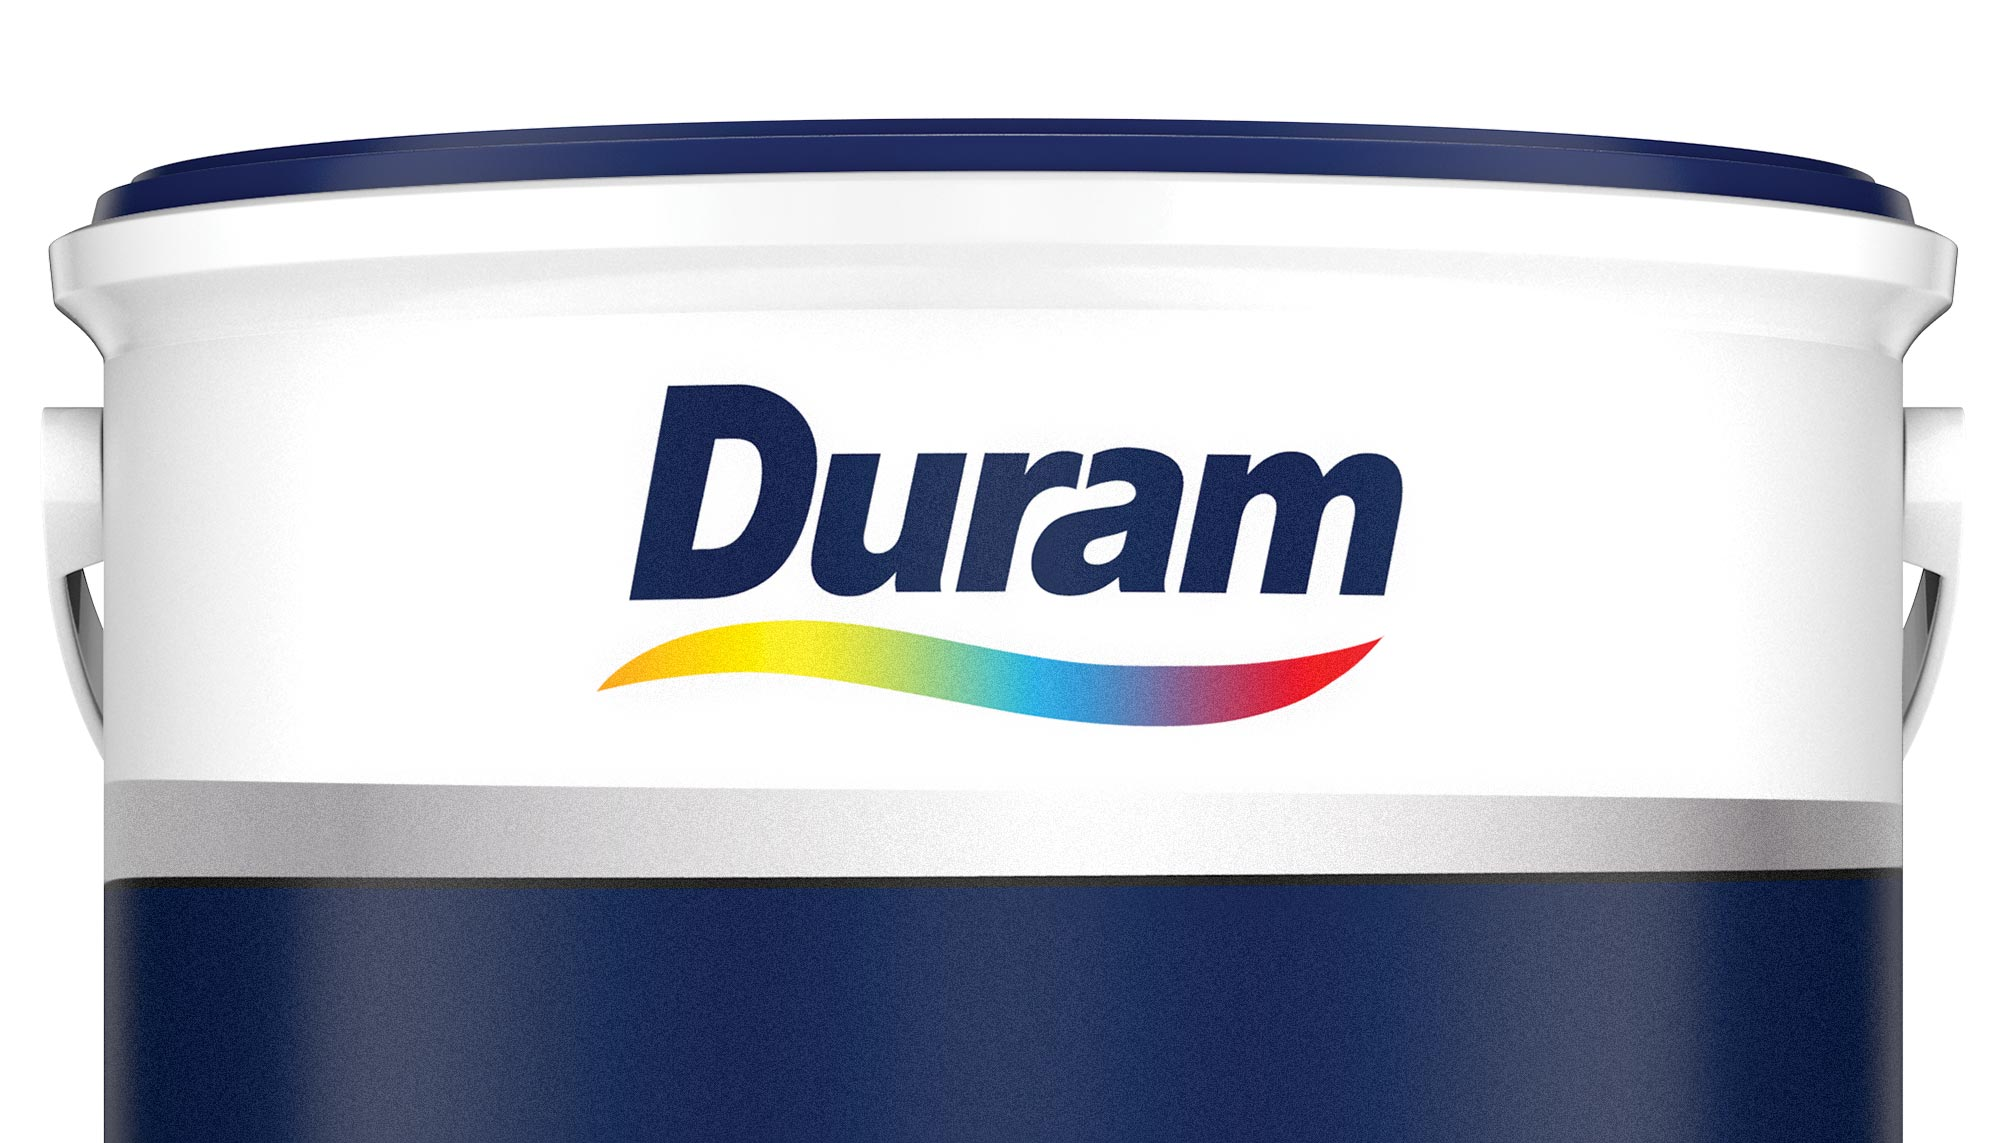 Close up of Duram logo on packaging